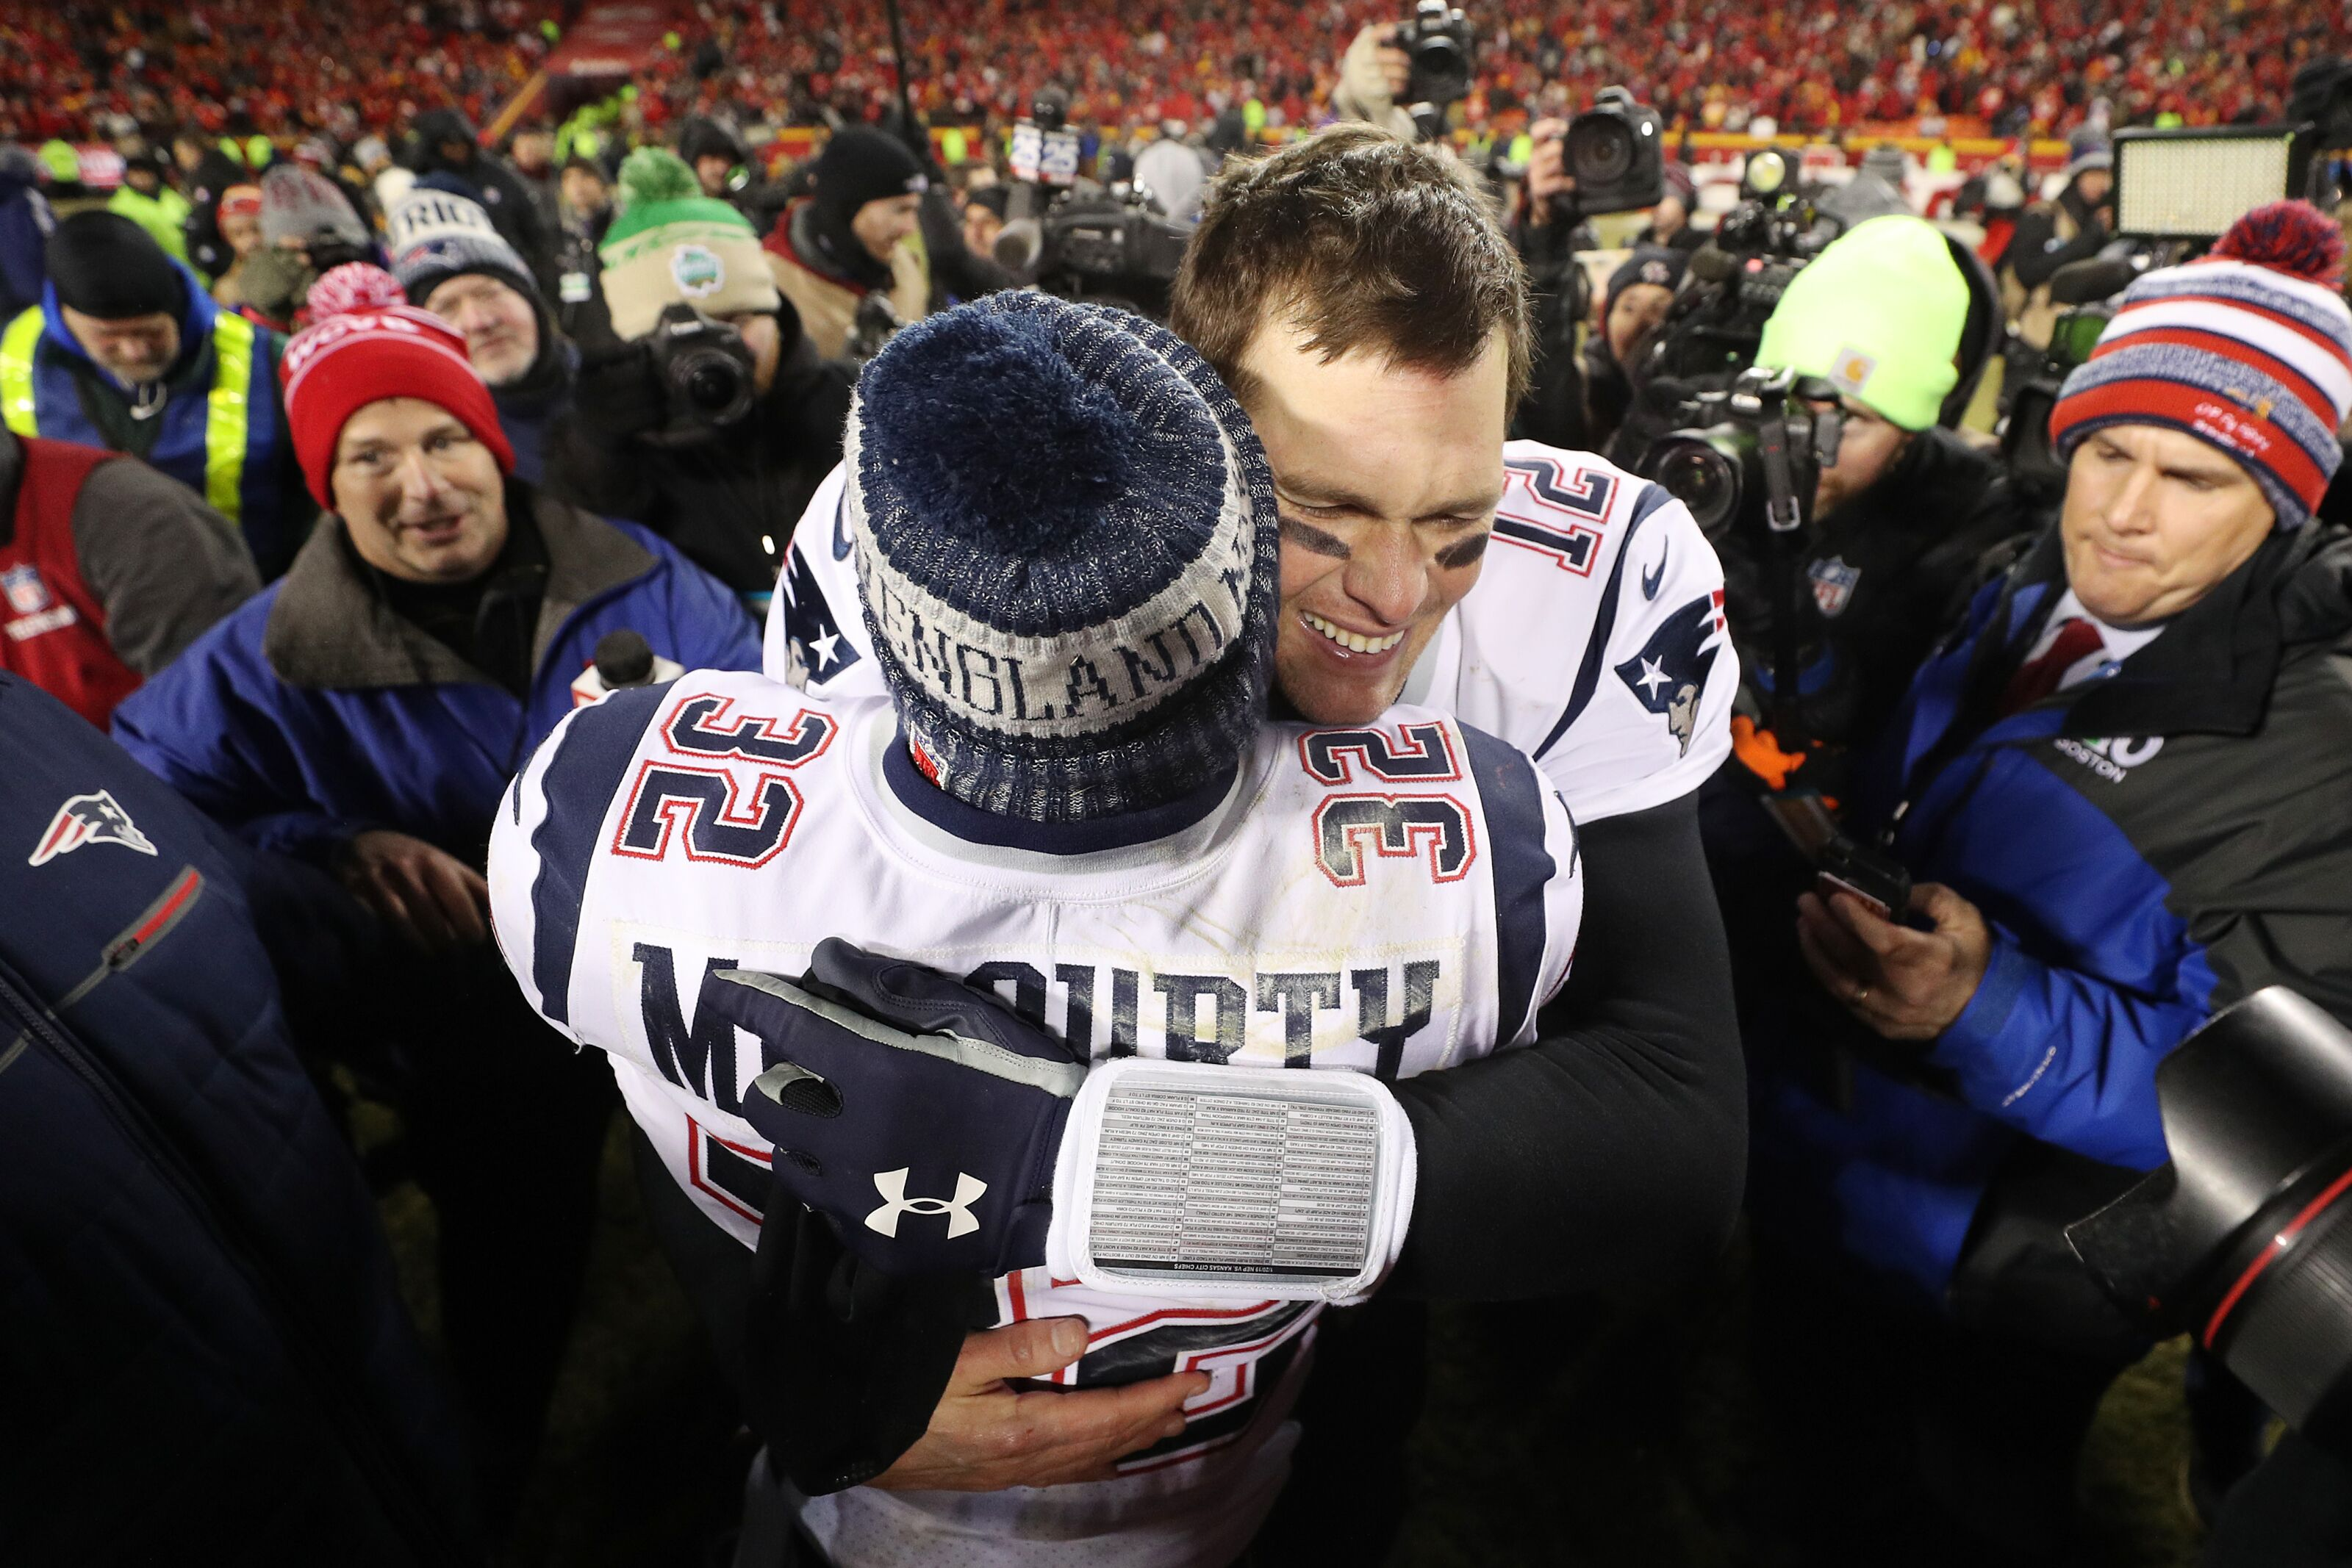 Tom Brady gives praise, respect to Patrick Mahomes after Patriots win over Chiefs